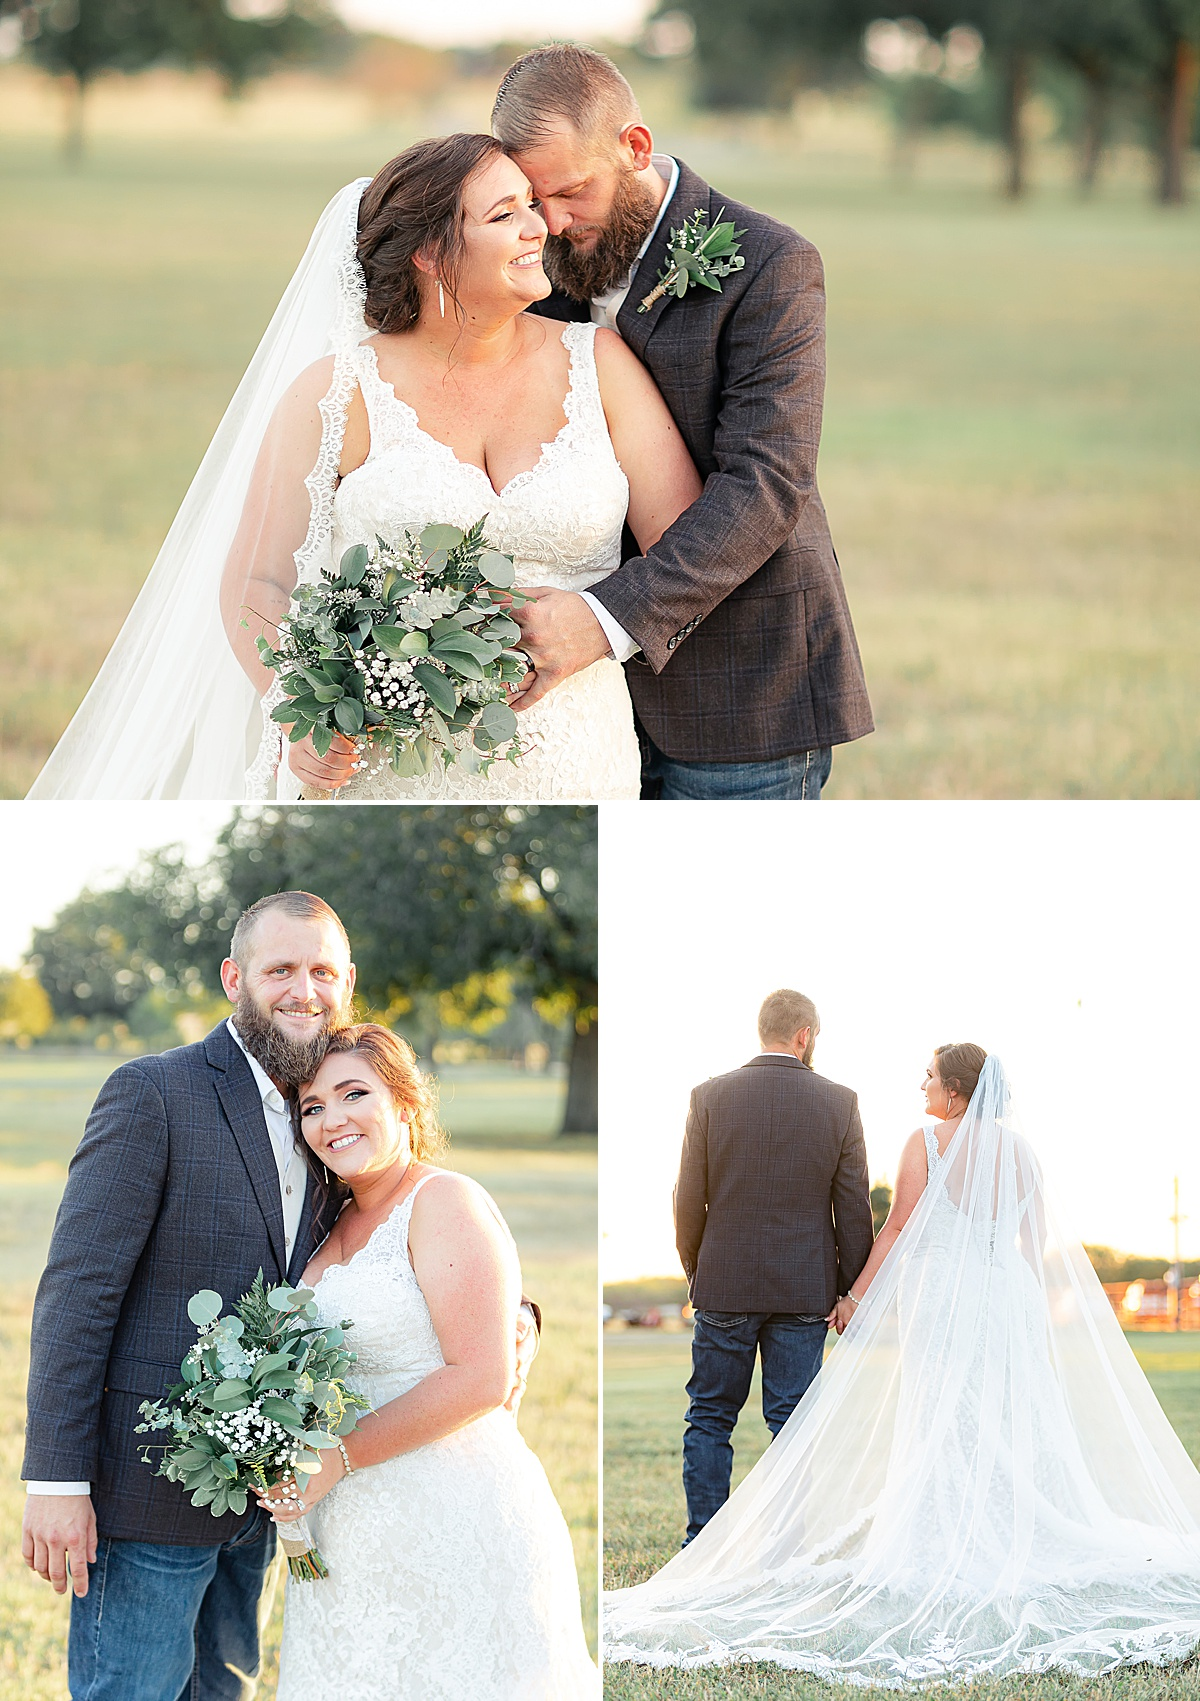 Rustic-Texas-Wedding-Hollow-Creek-Ranch-Carly-Barton-Photography_0094.jpg